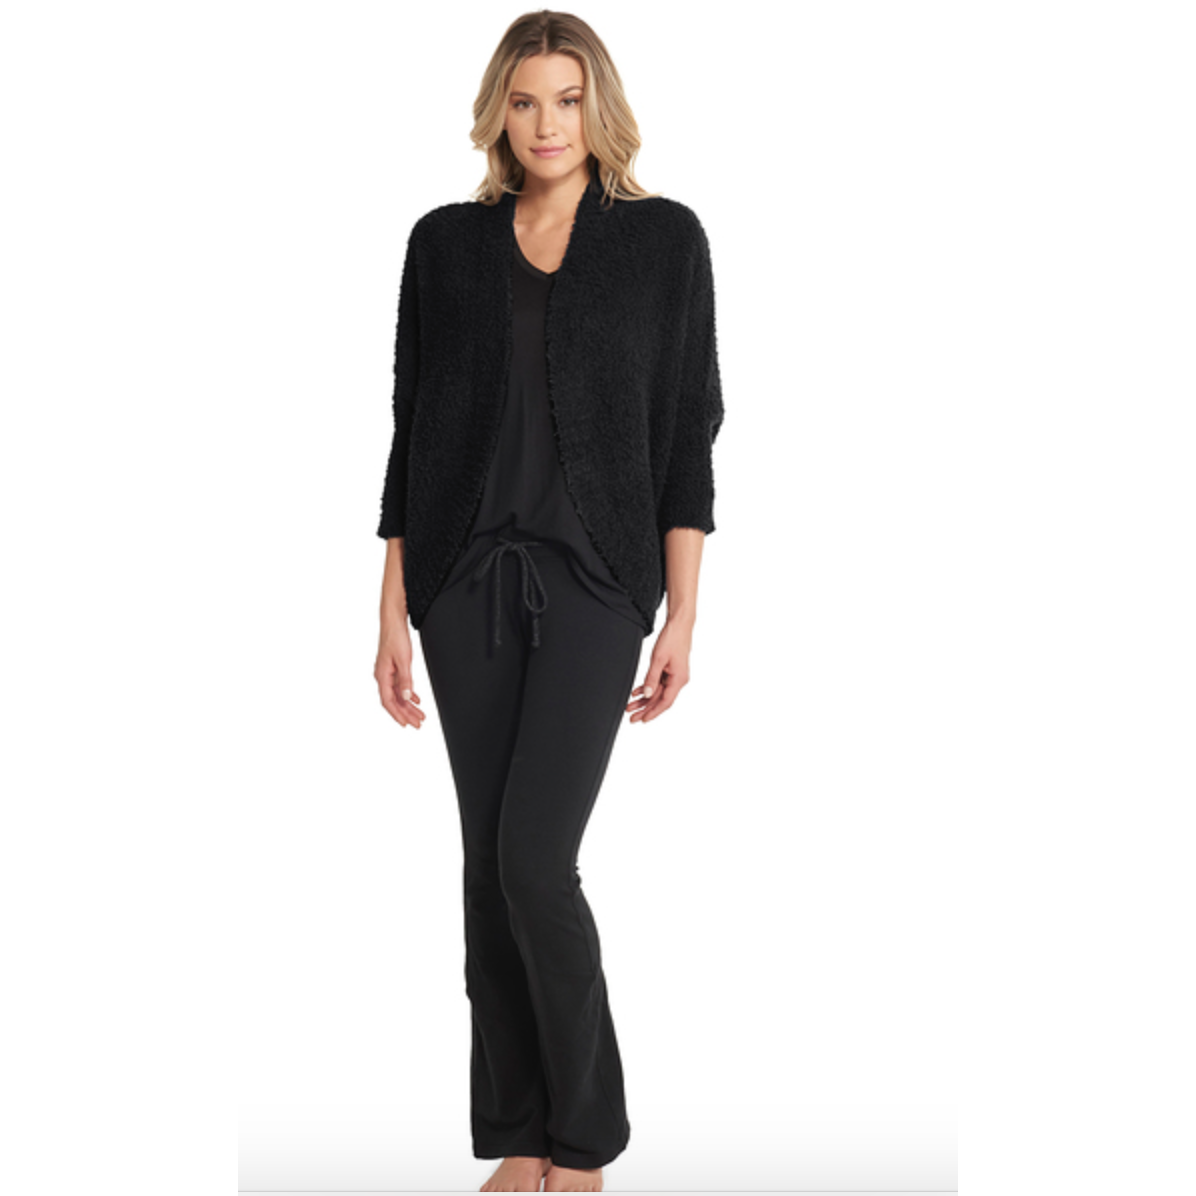 BAREFOOT DREAMS: the COZYCHIC® SHRUG